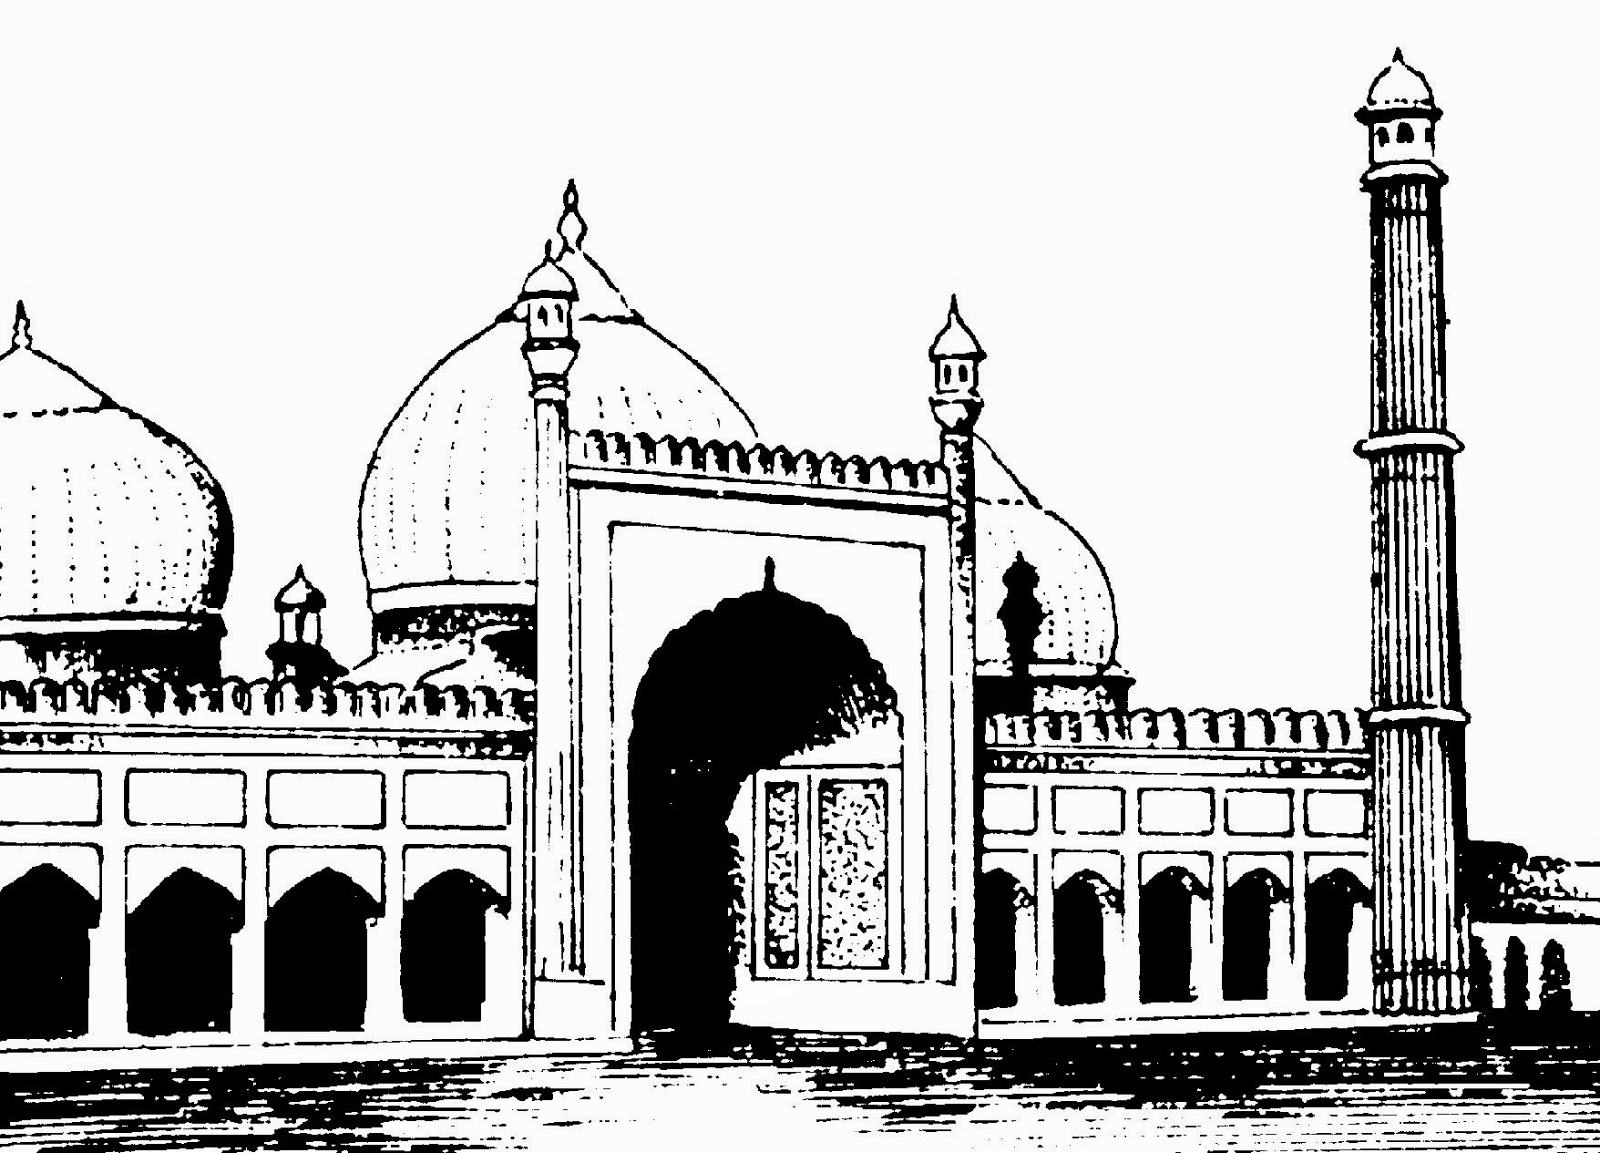 monuments of india drawing clip arts and images of india monuments of india line drawing of monuments india